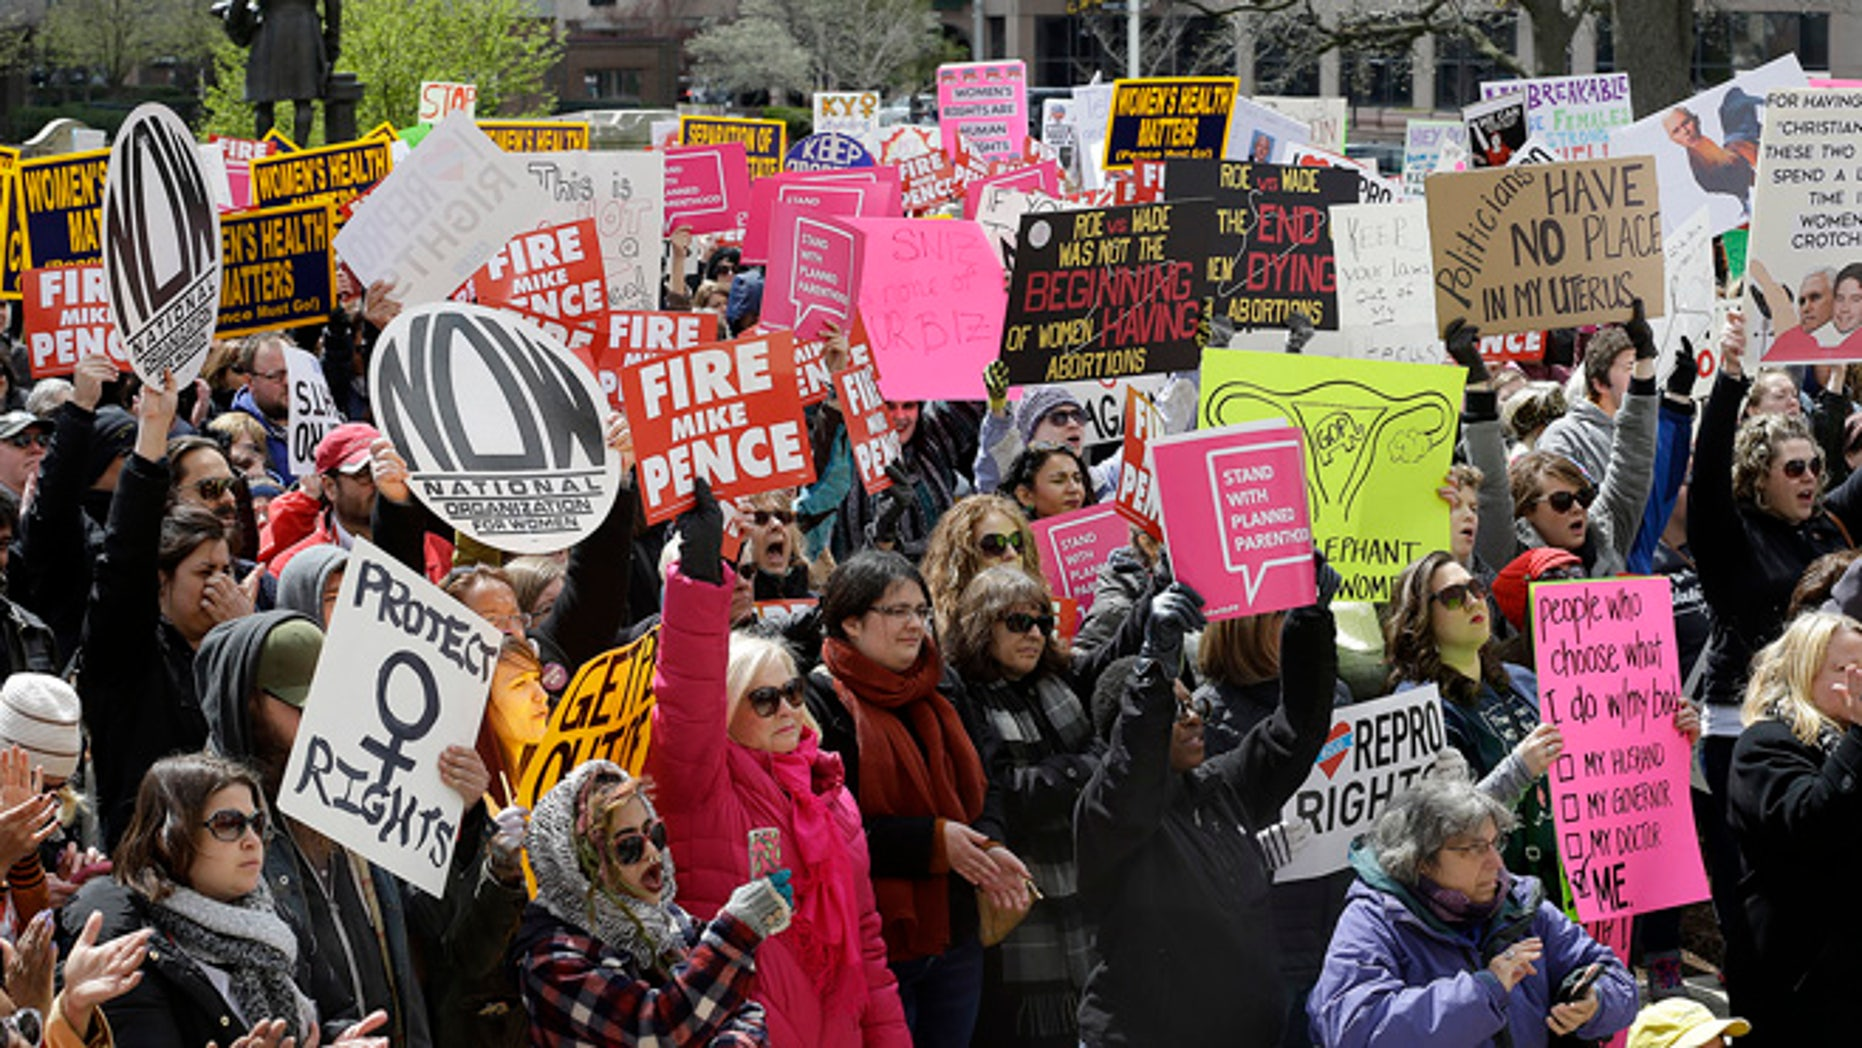 April 9, 2016: Hundreds of abortion rights supporters gather at the Indiana Statehouse.